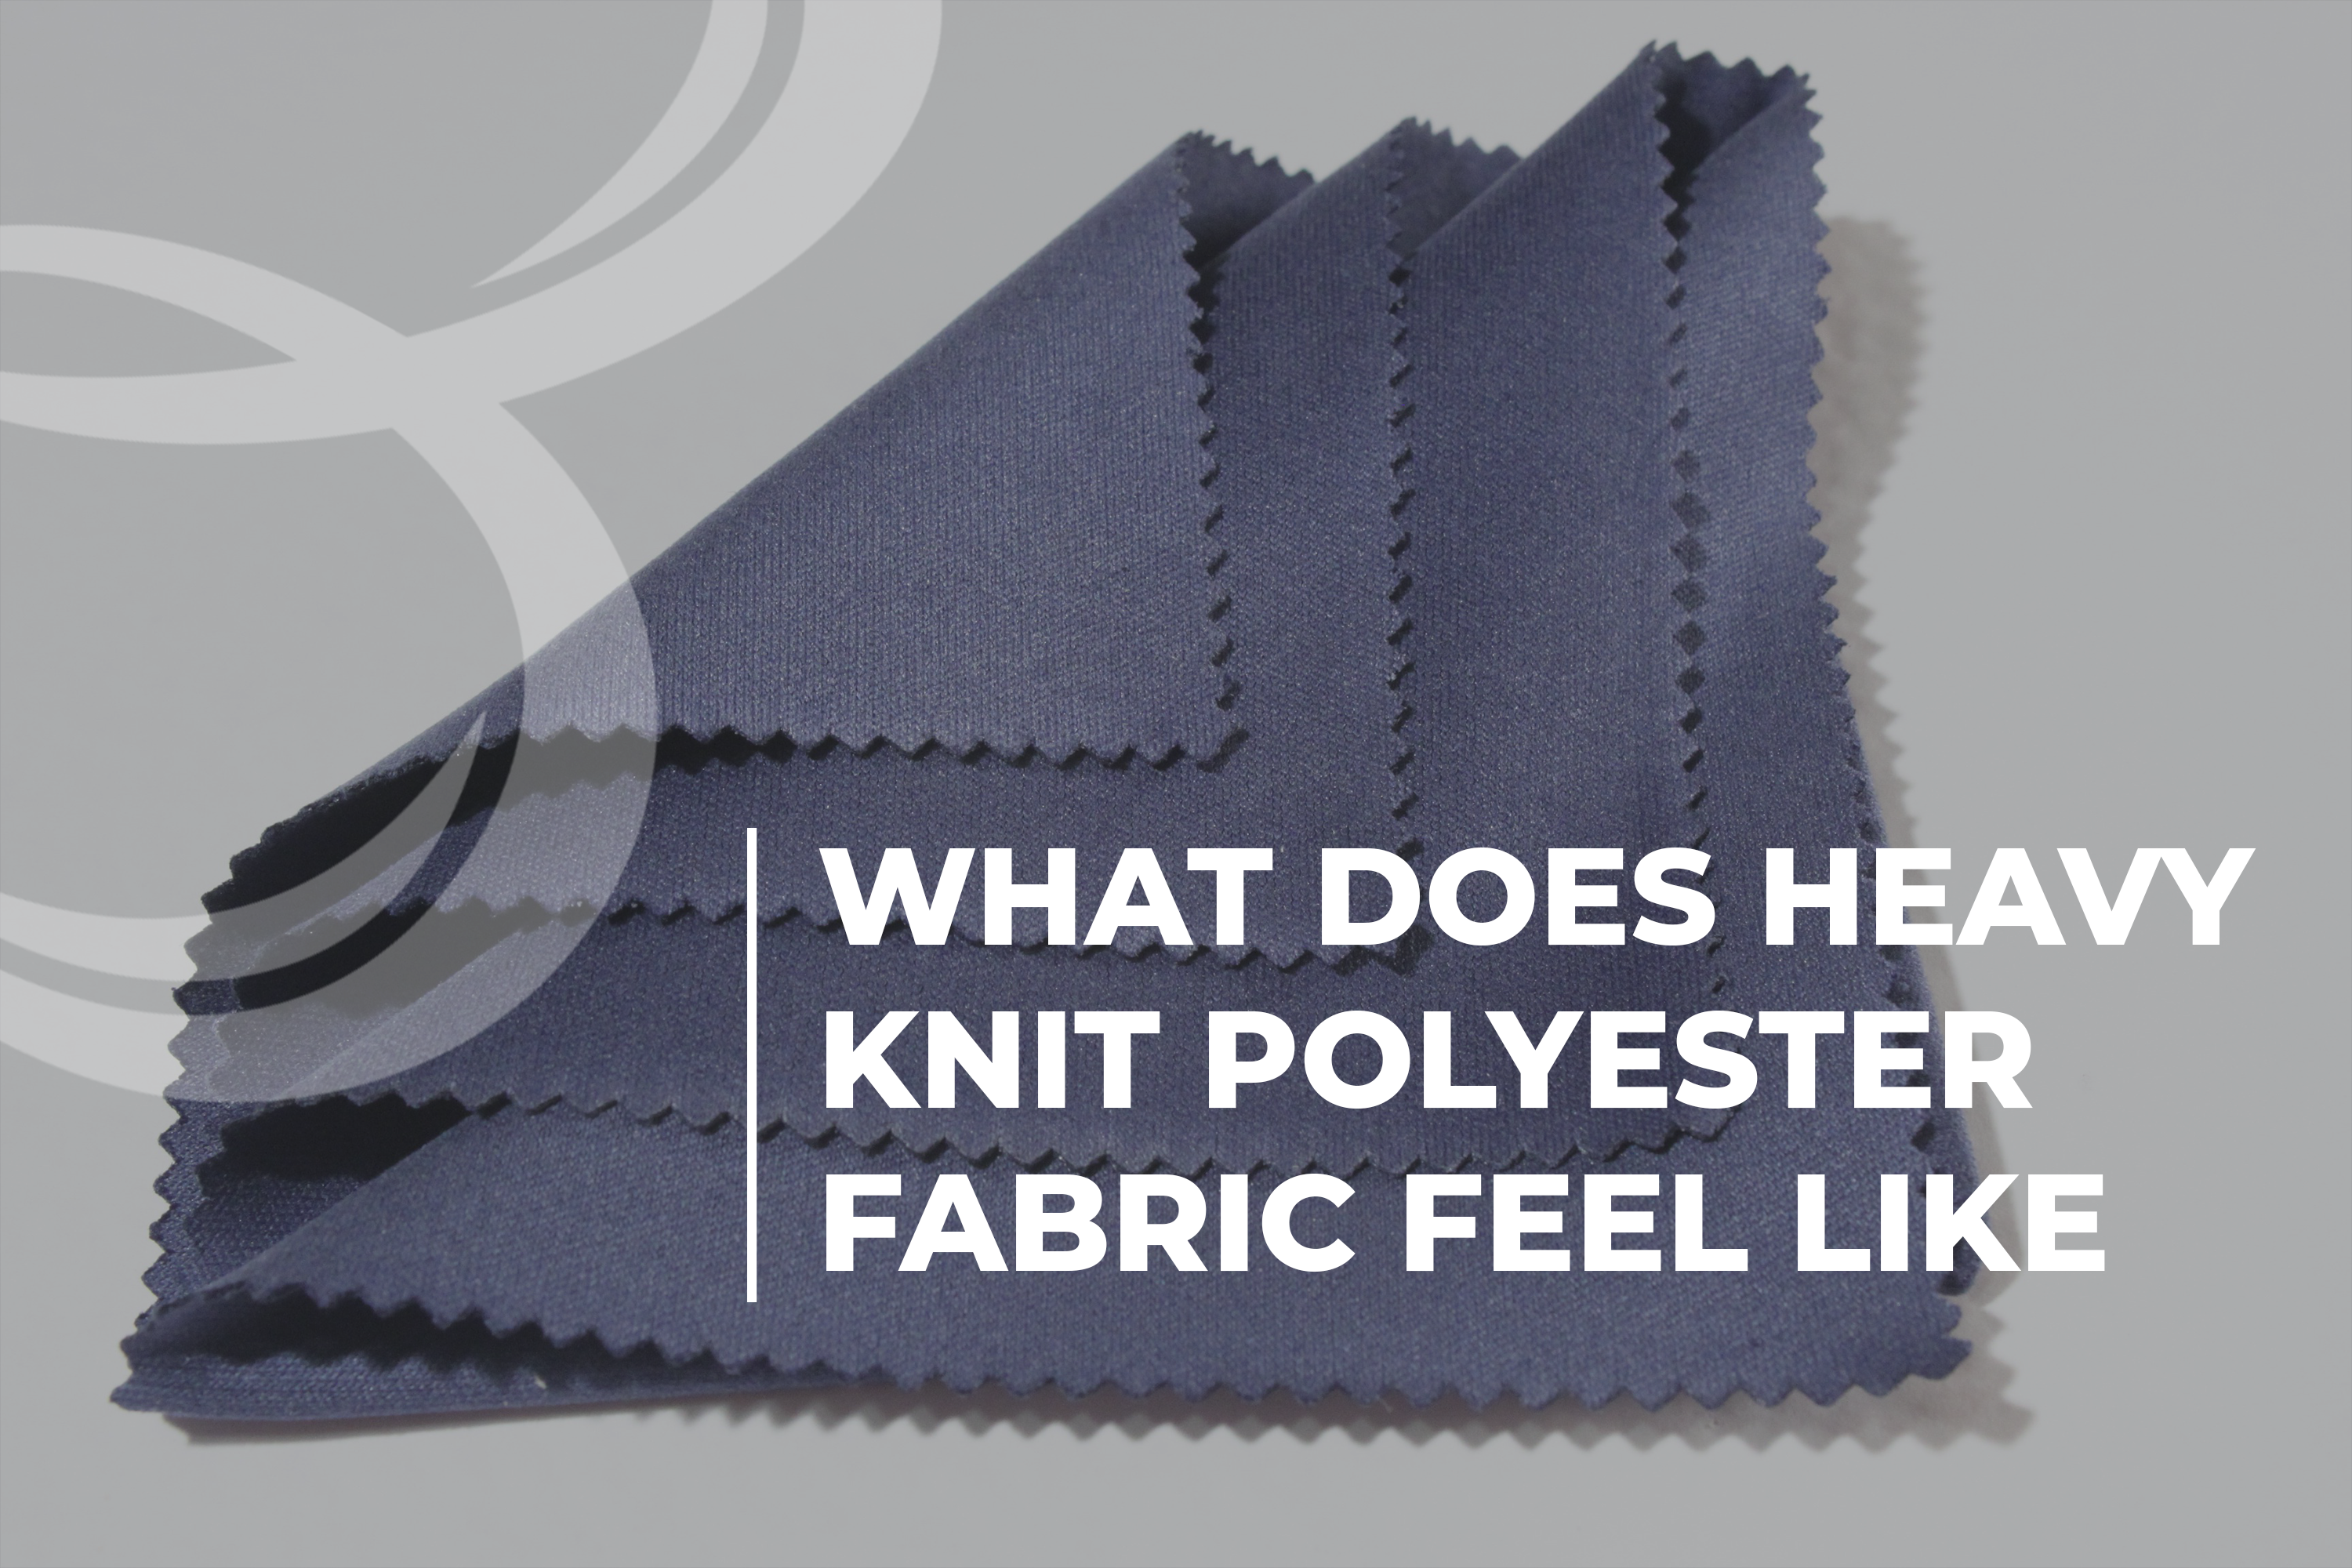 What Does Heavy Knit Polyester Fabric Feel Like